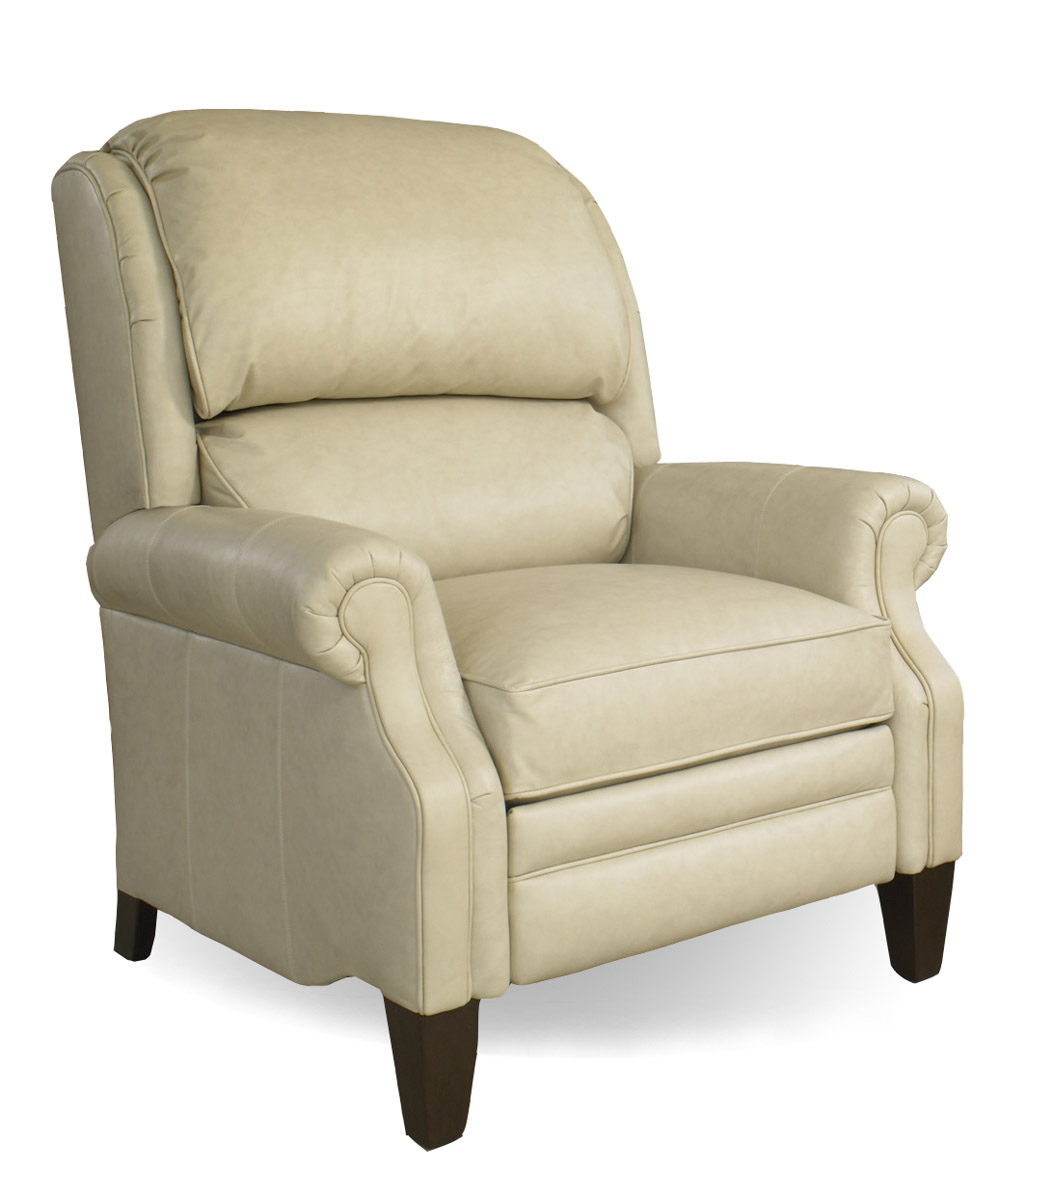 Smith 710 Recliner Room Concepts